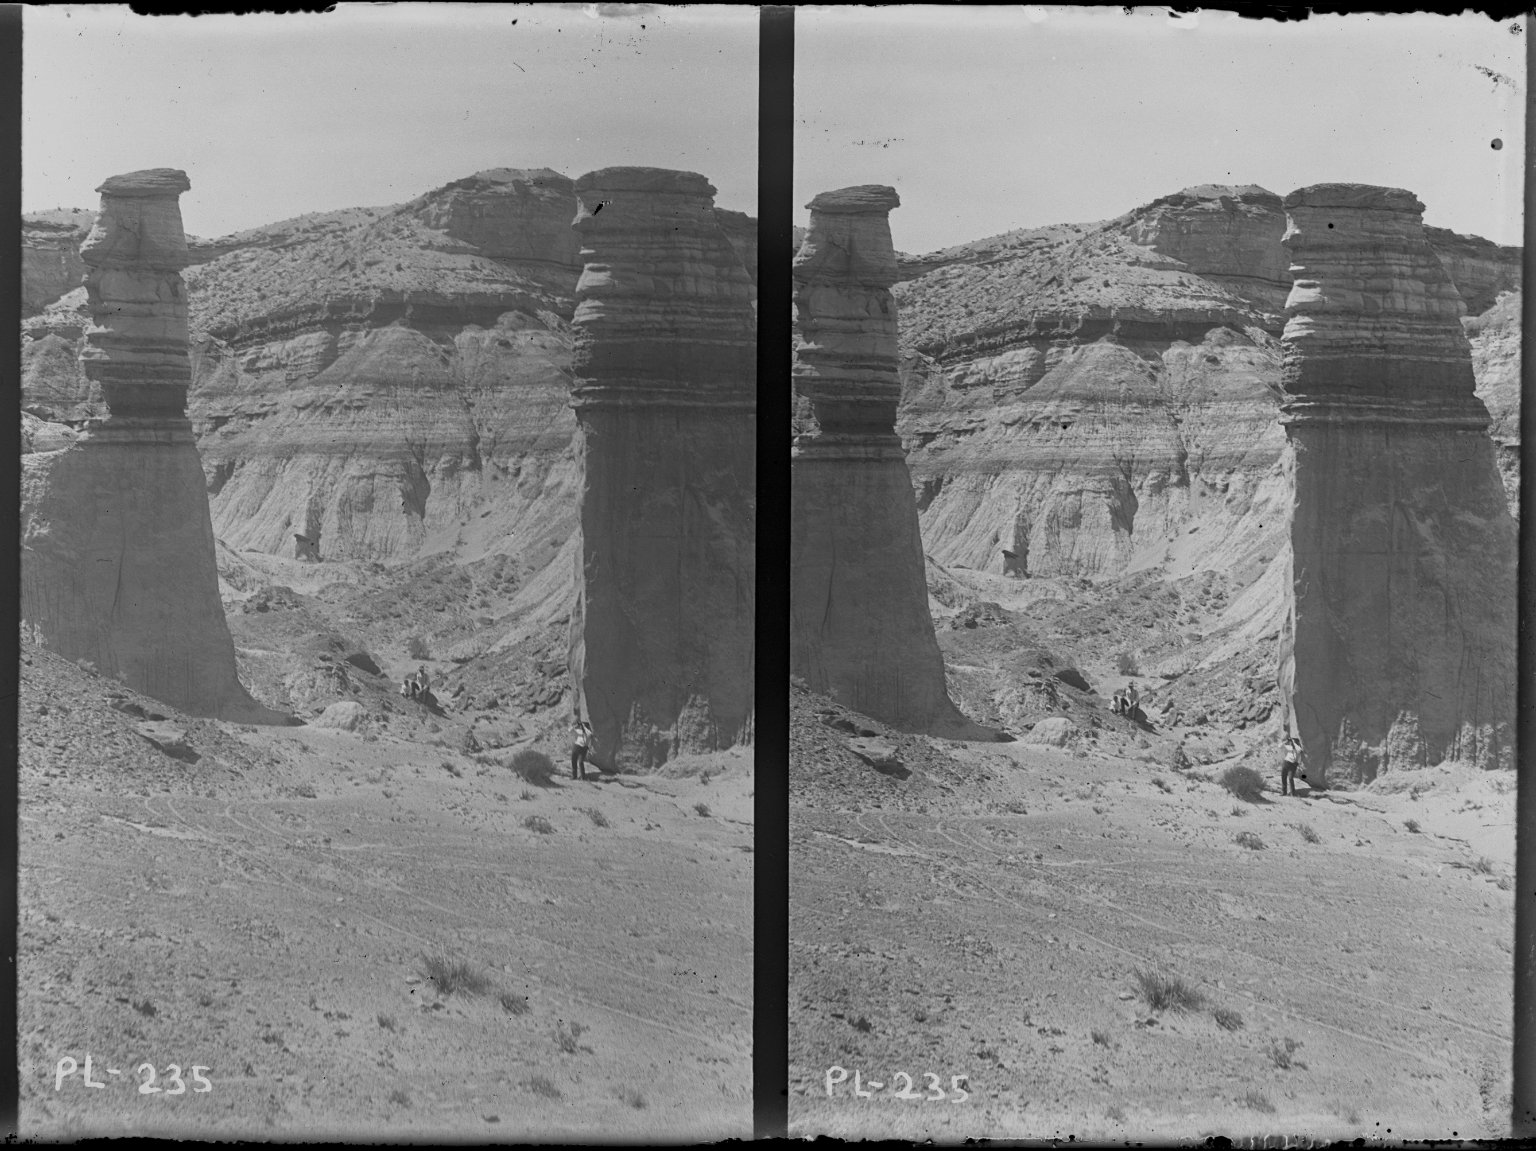 Erosion left 2 pillars in Bad Lands